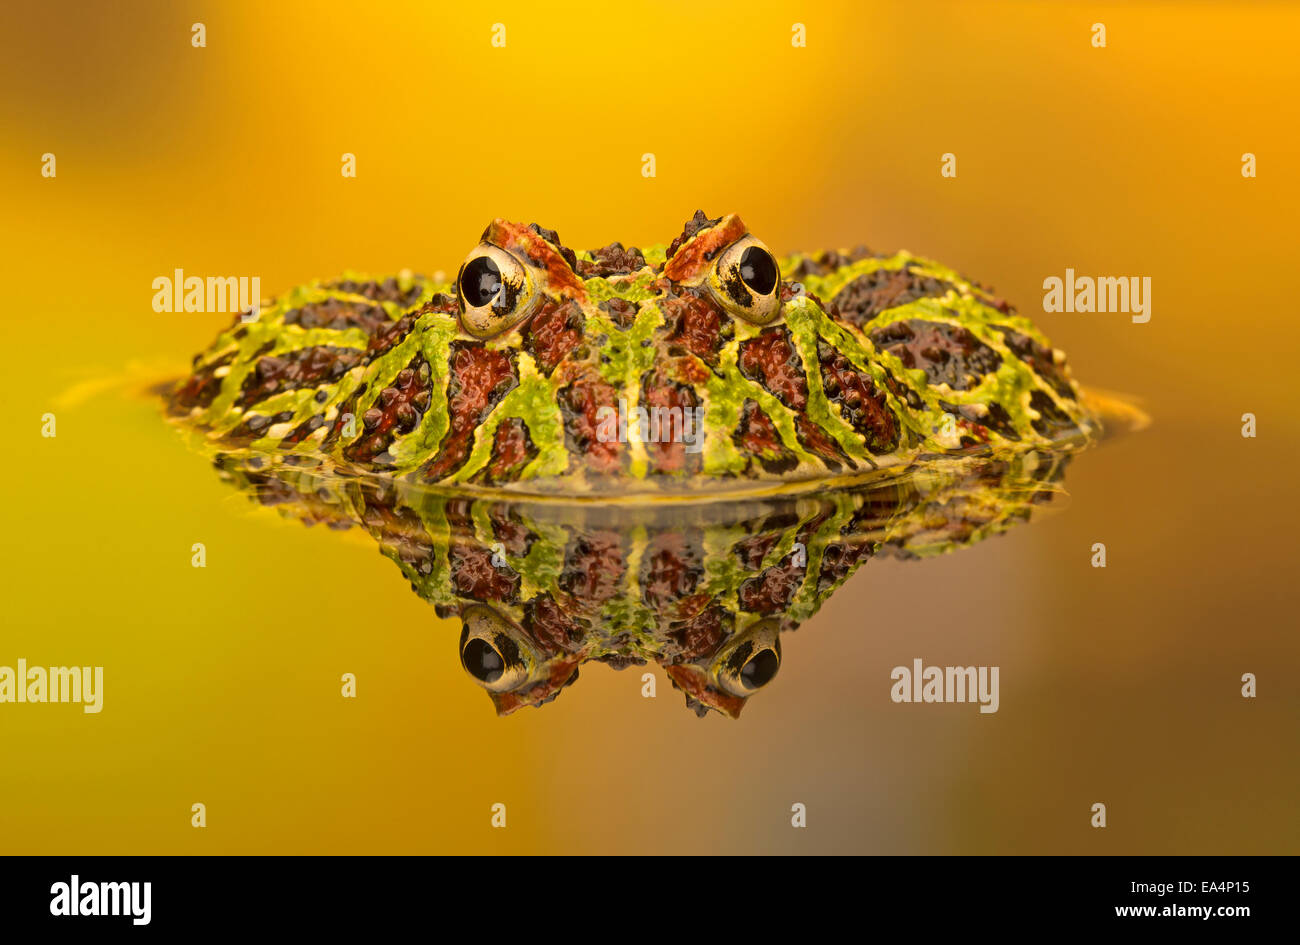 Ornate horned frog (Ceratophrys cranwelli) and its reflection in a pool Stock Photo